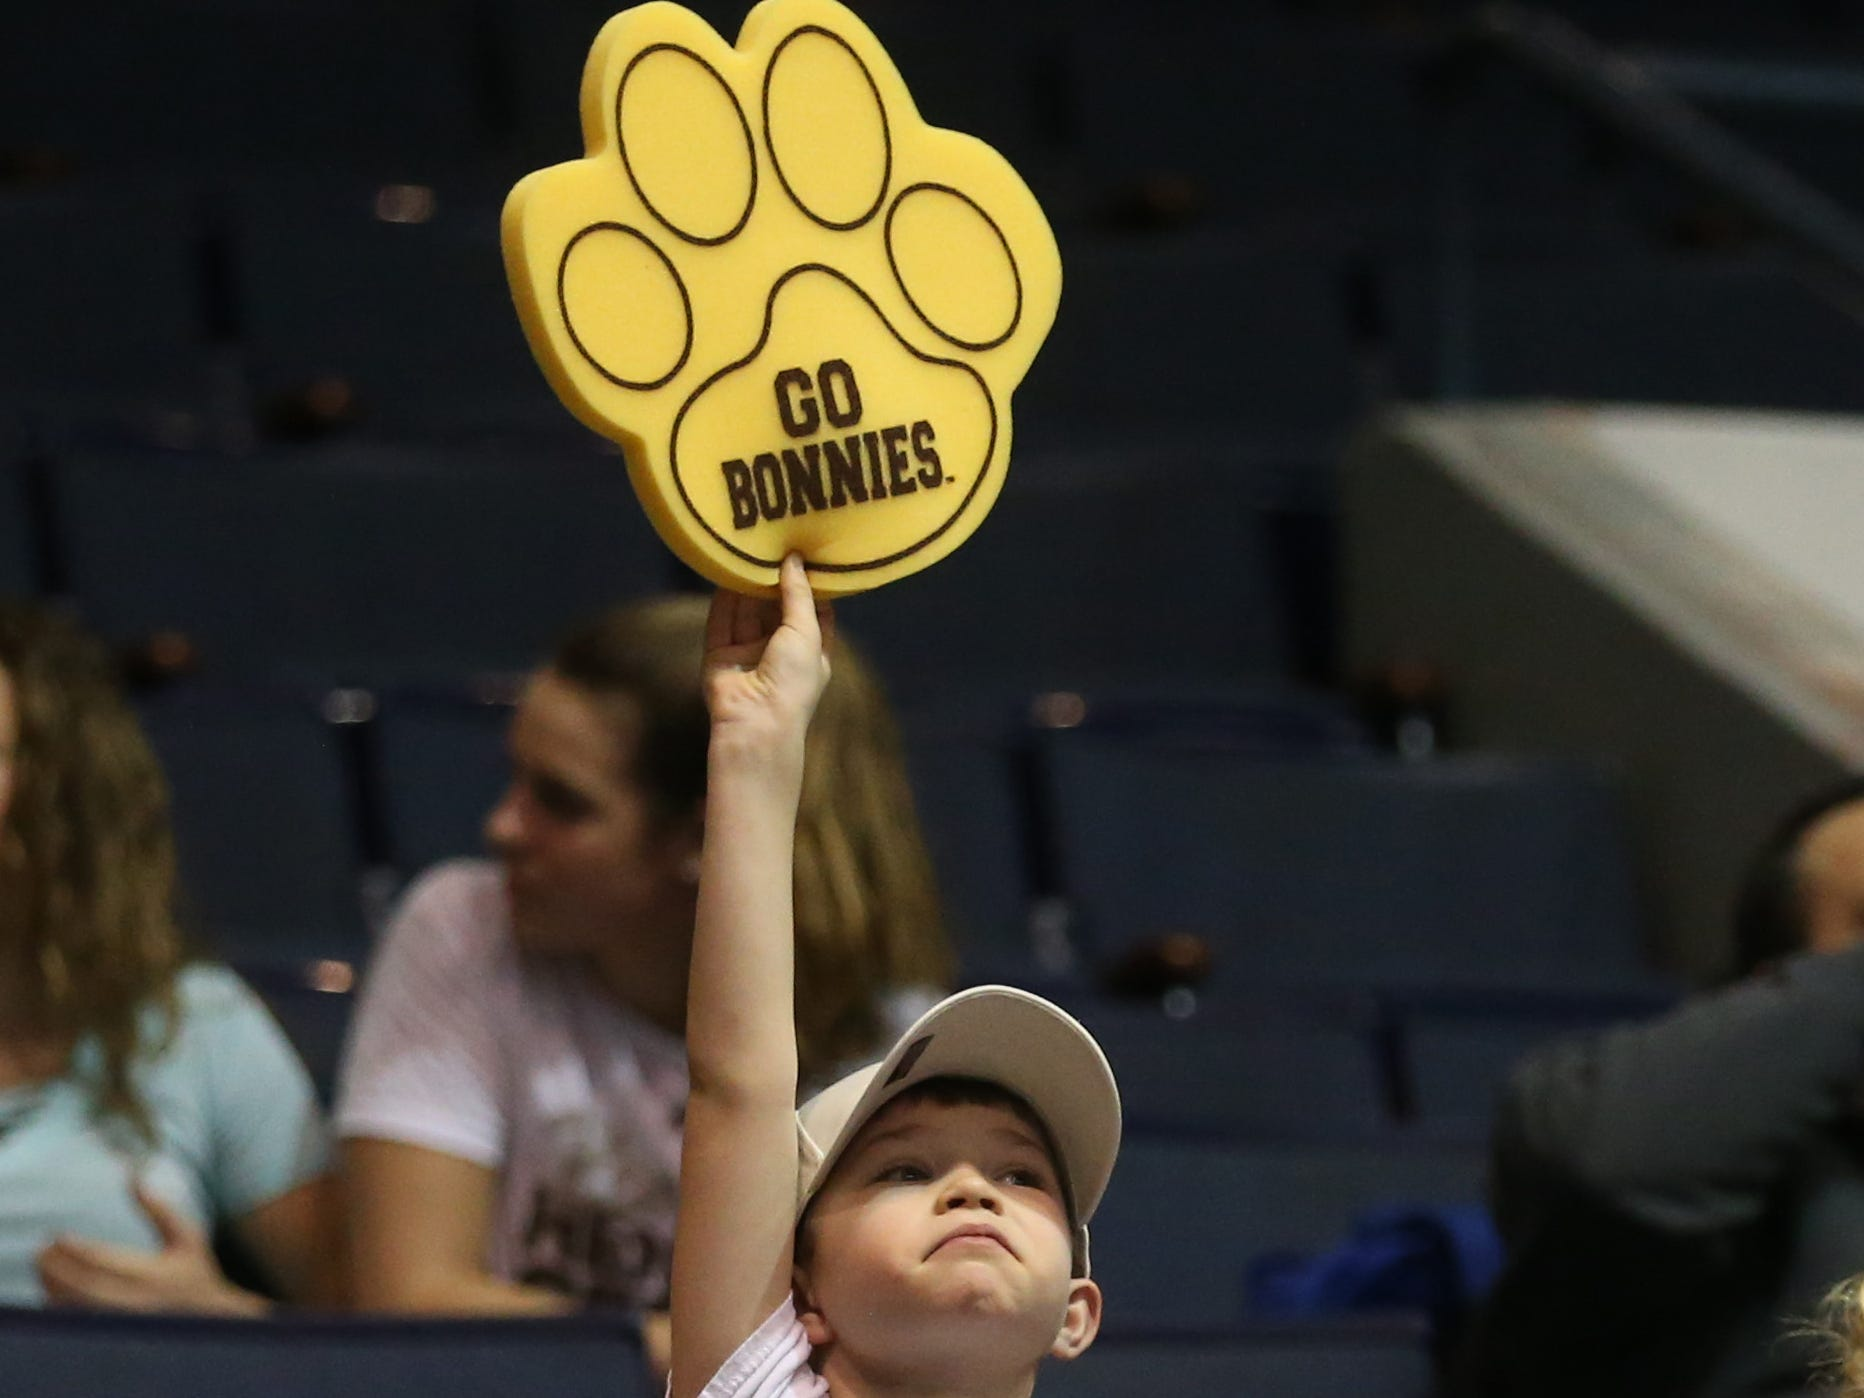 St. Bonaventure's super fan Aiden Lair, 7, Webster, shows his support for the team.